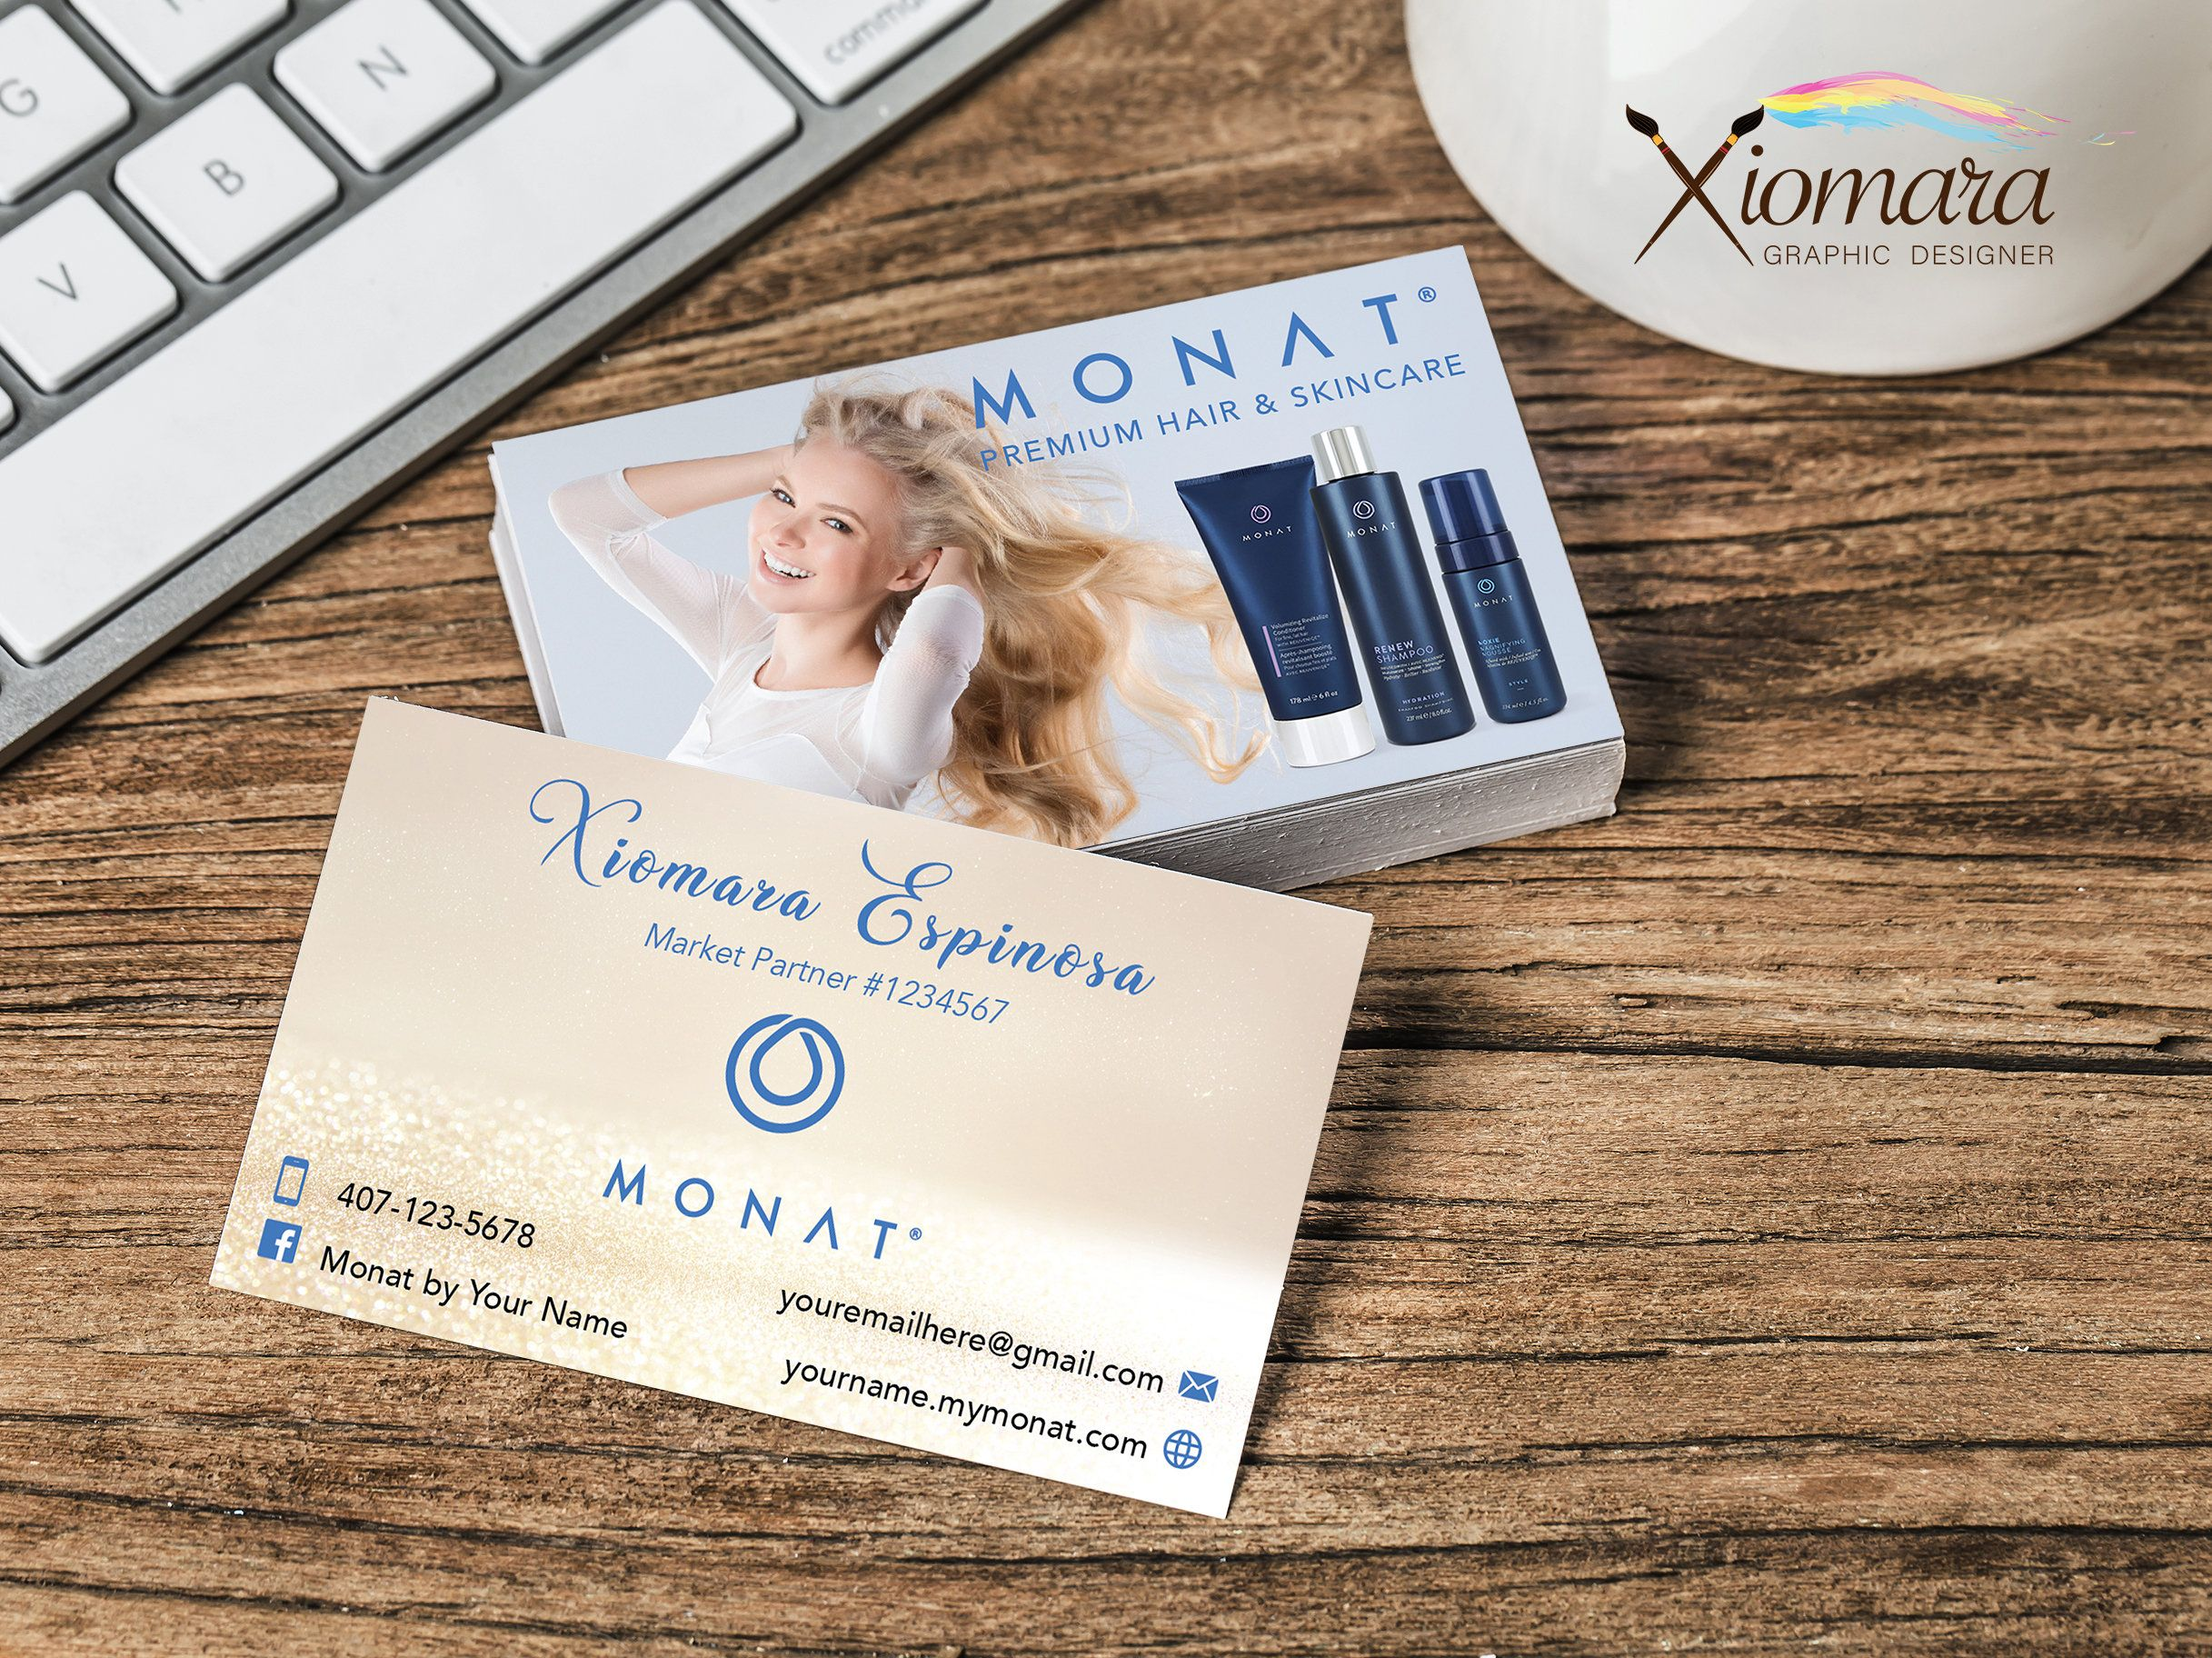 MONAT Business Cards Etsy in 2020 Printable business